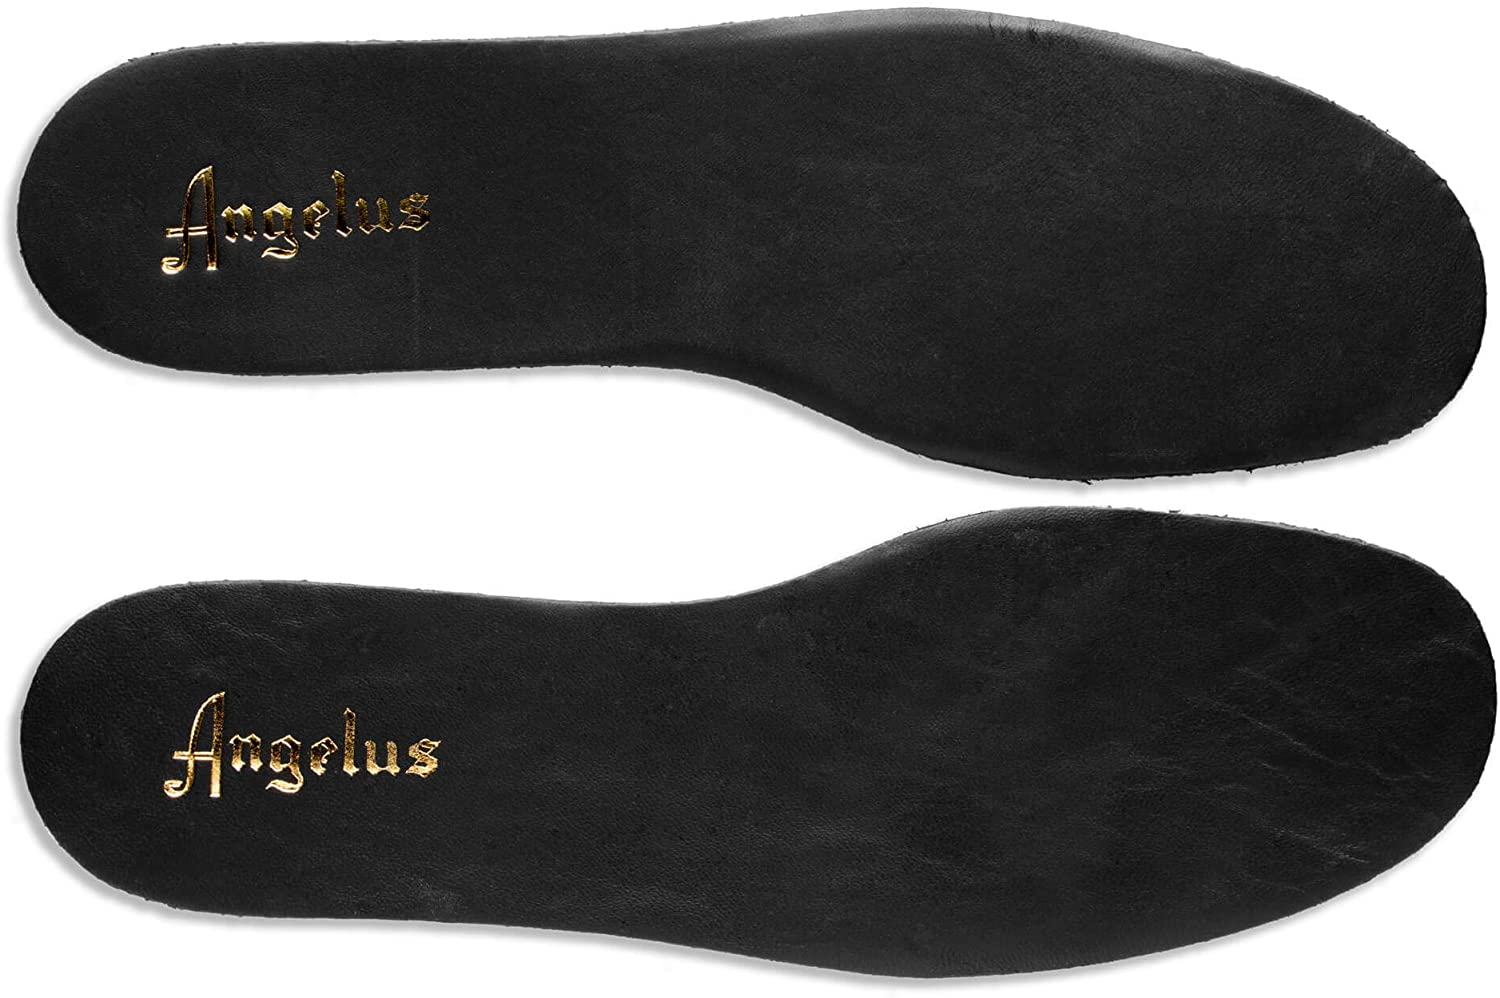 Premium Leather Insole for Shoes/Sneakers- Prevents Foot Odor- Absorbs Moisture- Can Customize and Paint on by Angelus (Black, 13)